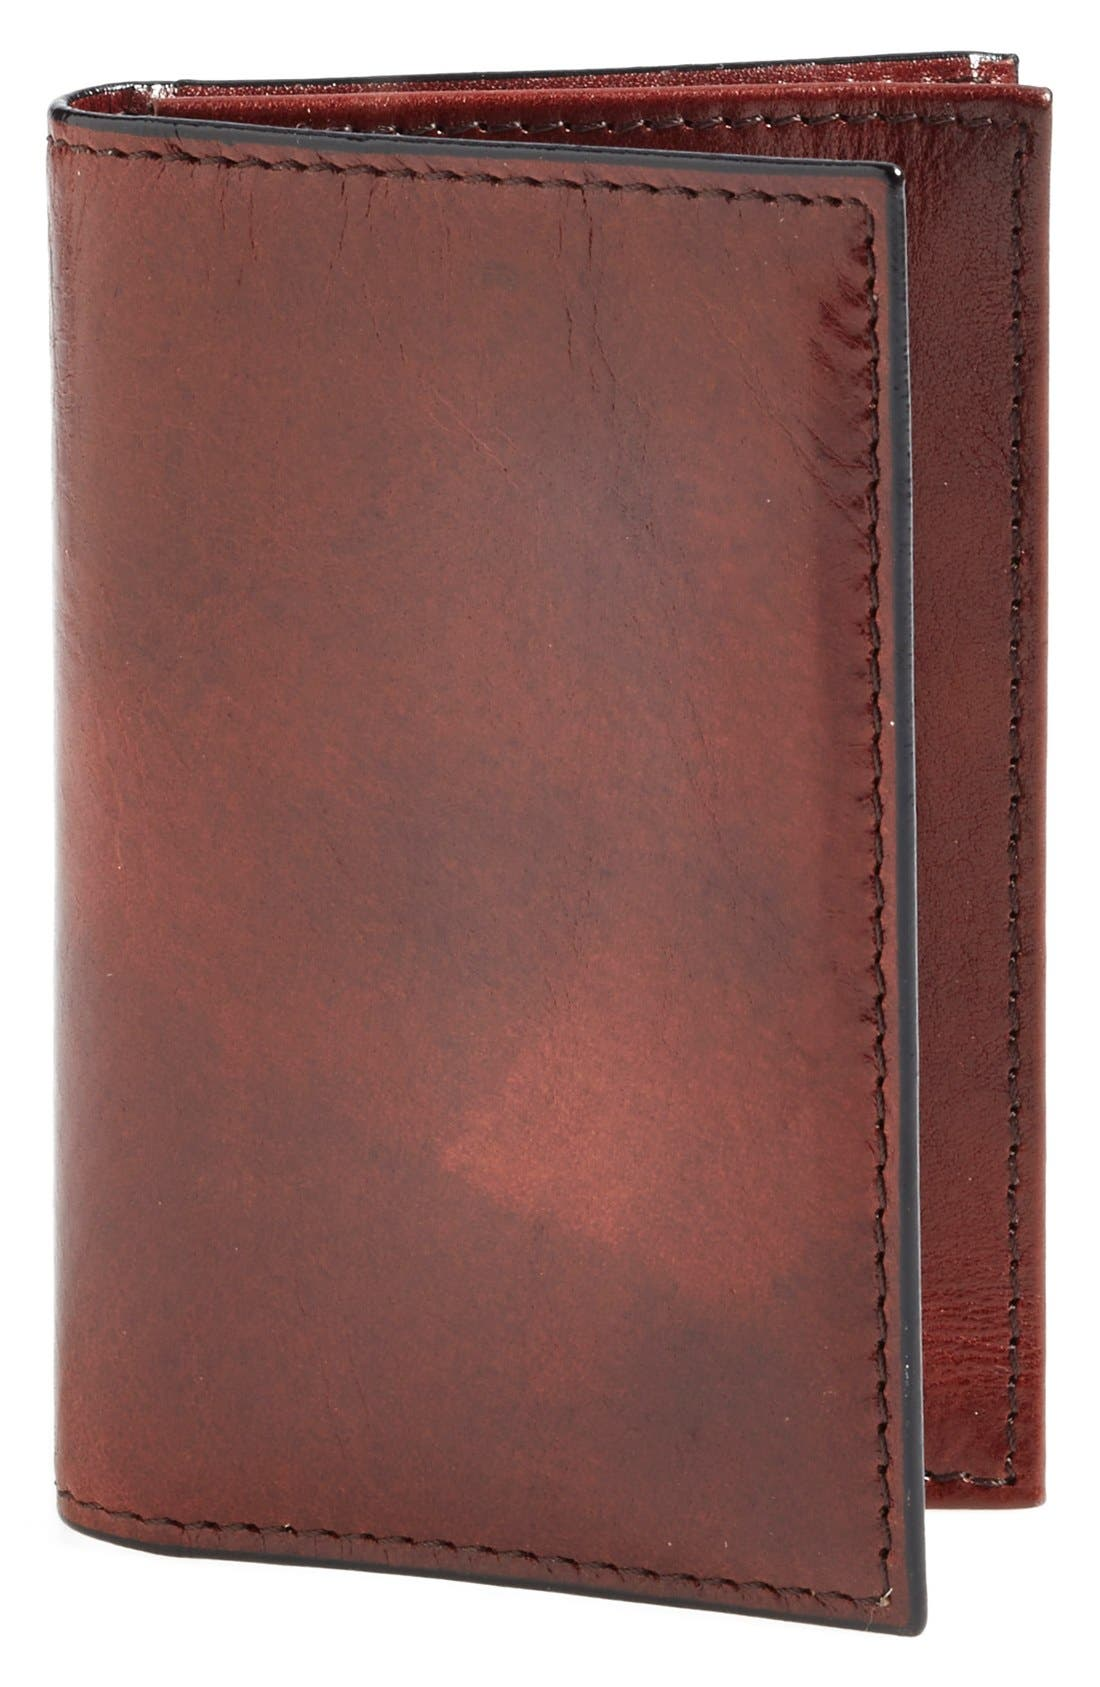 Bosca 'Old Leather' Gusset Wallet